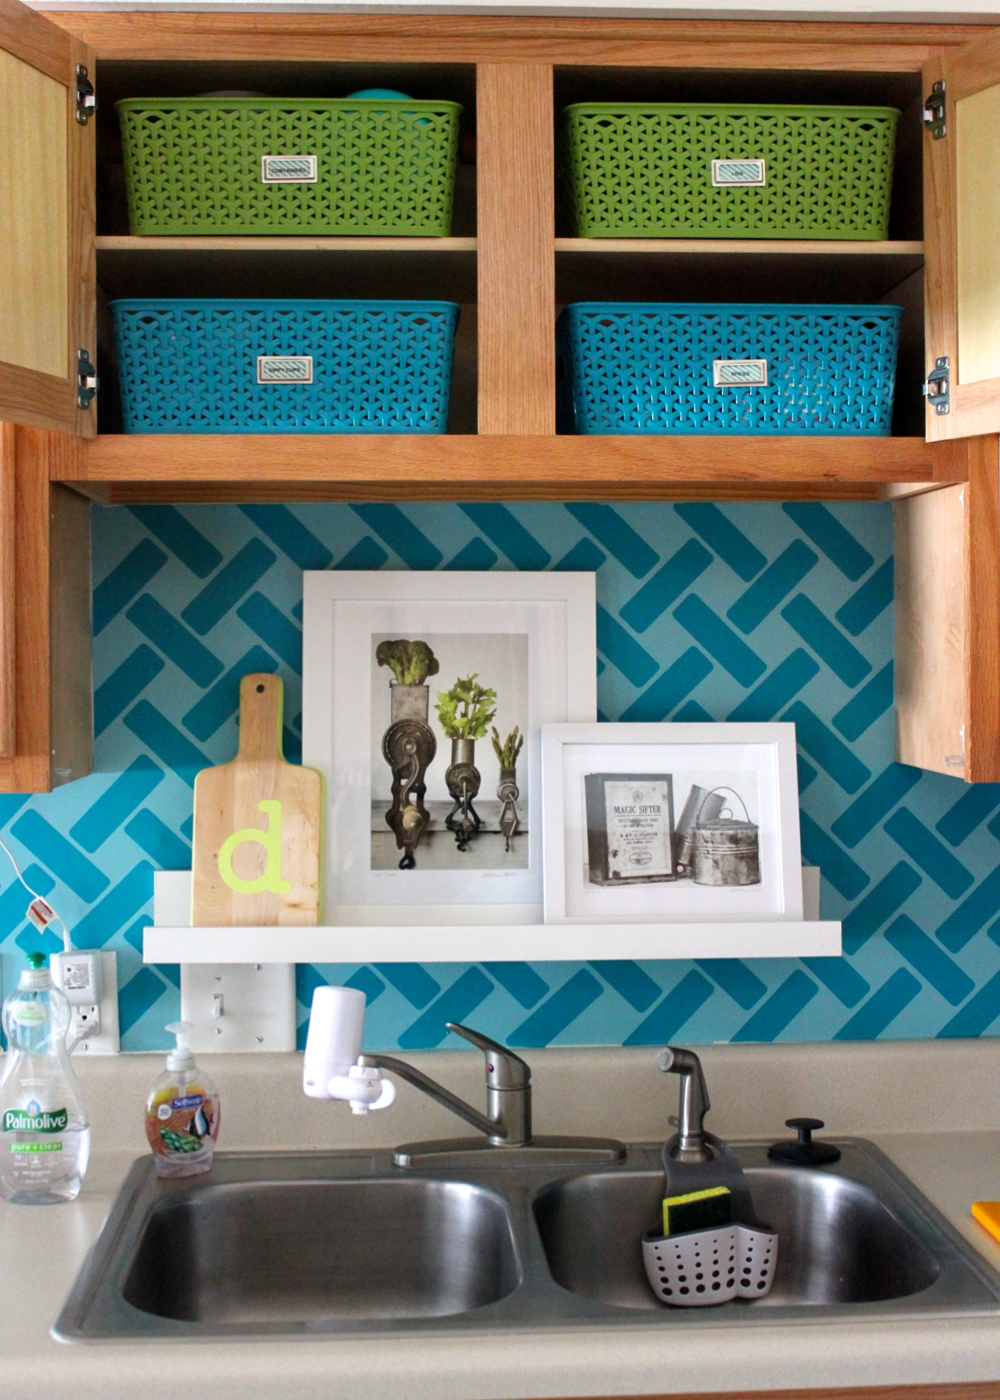 Kitchen Cupboard Organizing Storage Ideas For Little Upper Cabinets The Homes I Have Made